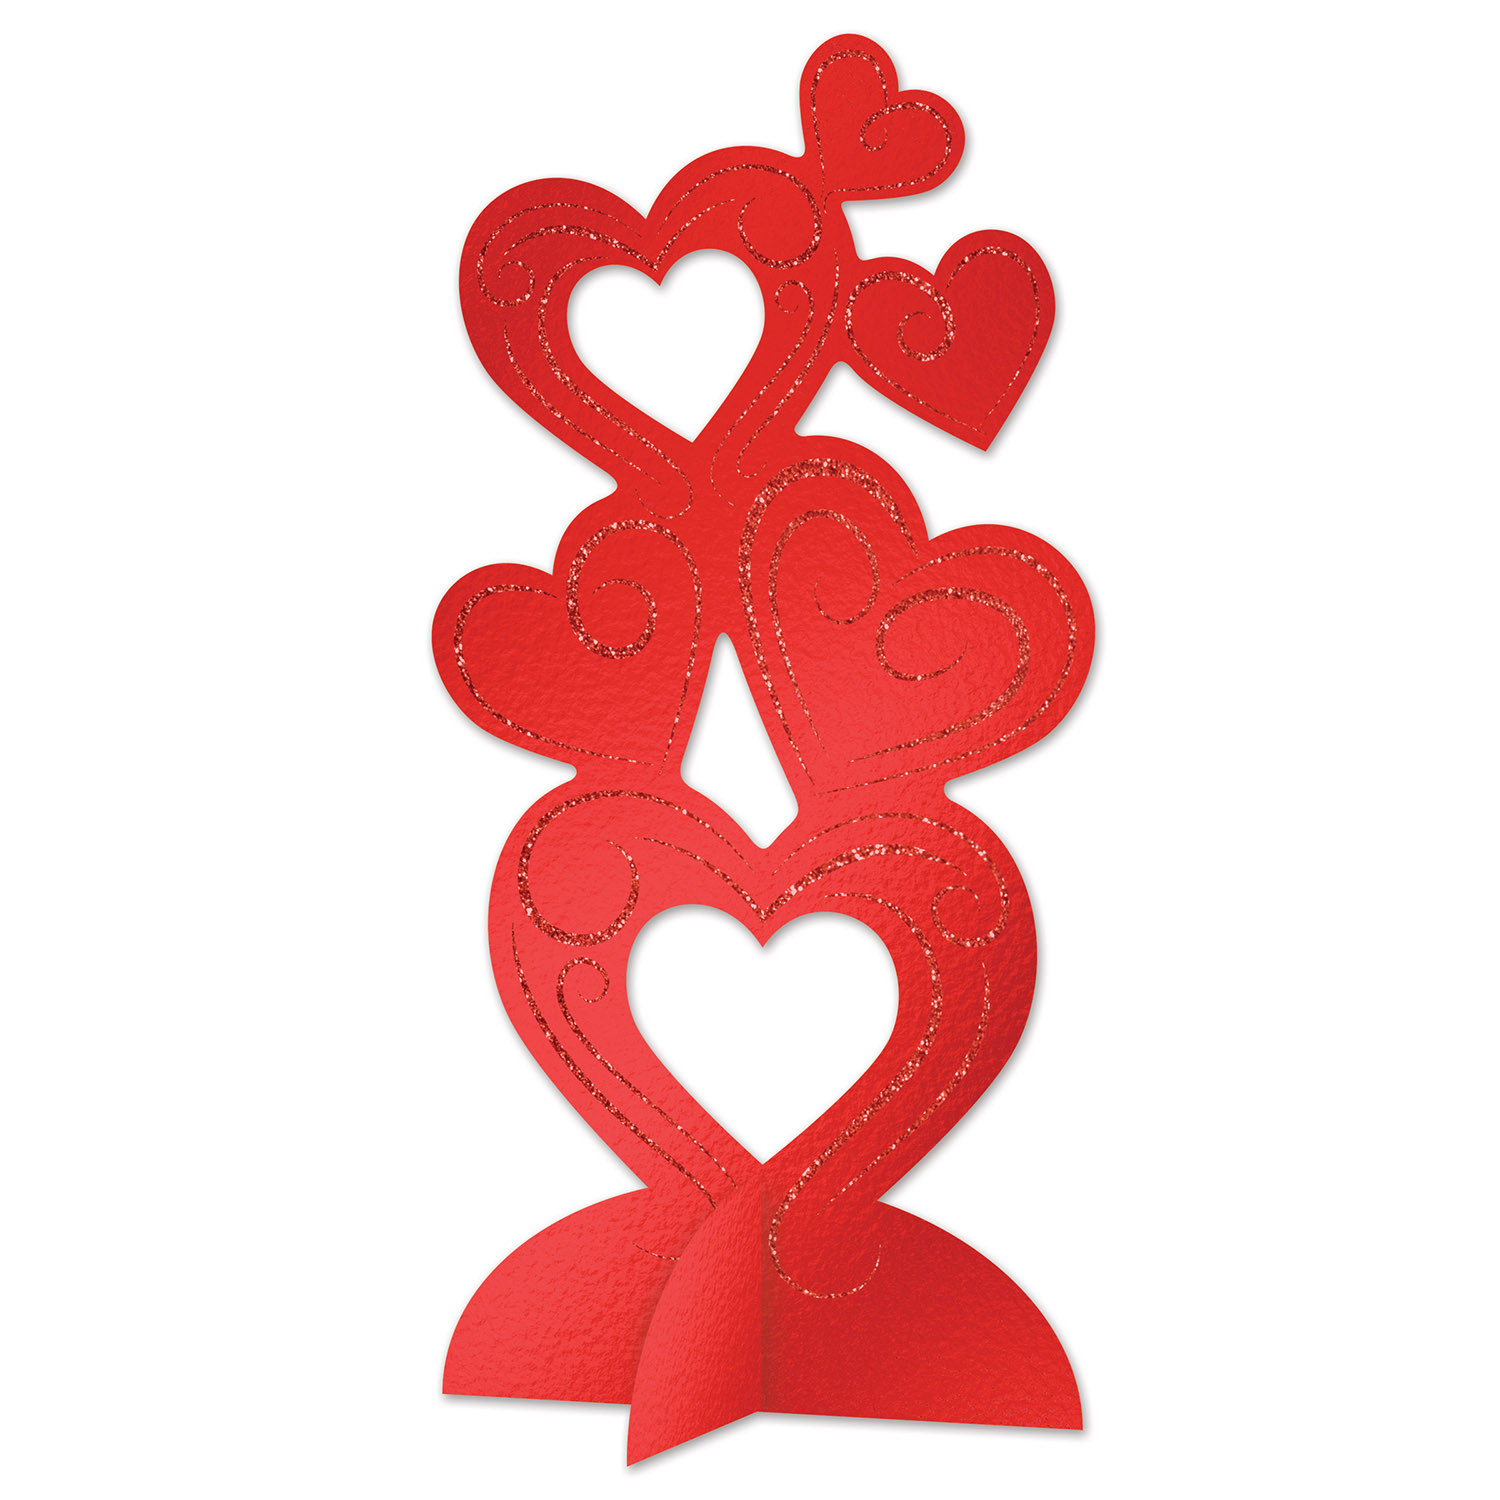 3-D Glittered Heart Centerpiece (Pack of 12) 3-D Centerpiece, Heart Centerpiece, Glittered Heart Centerpiece, Wholesale party supplies, Inexpensive party decorations, Valentines Decor, Heart party supplies, Valentines Day Ideas